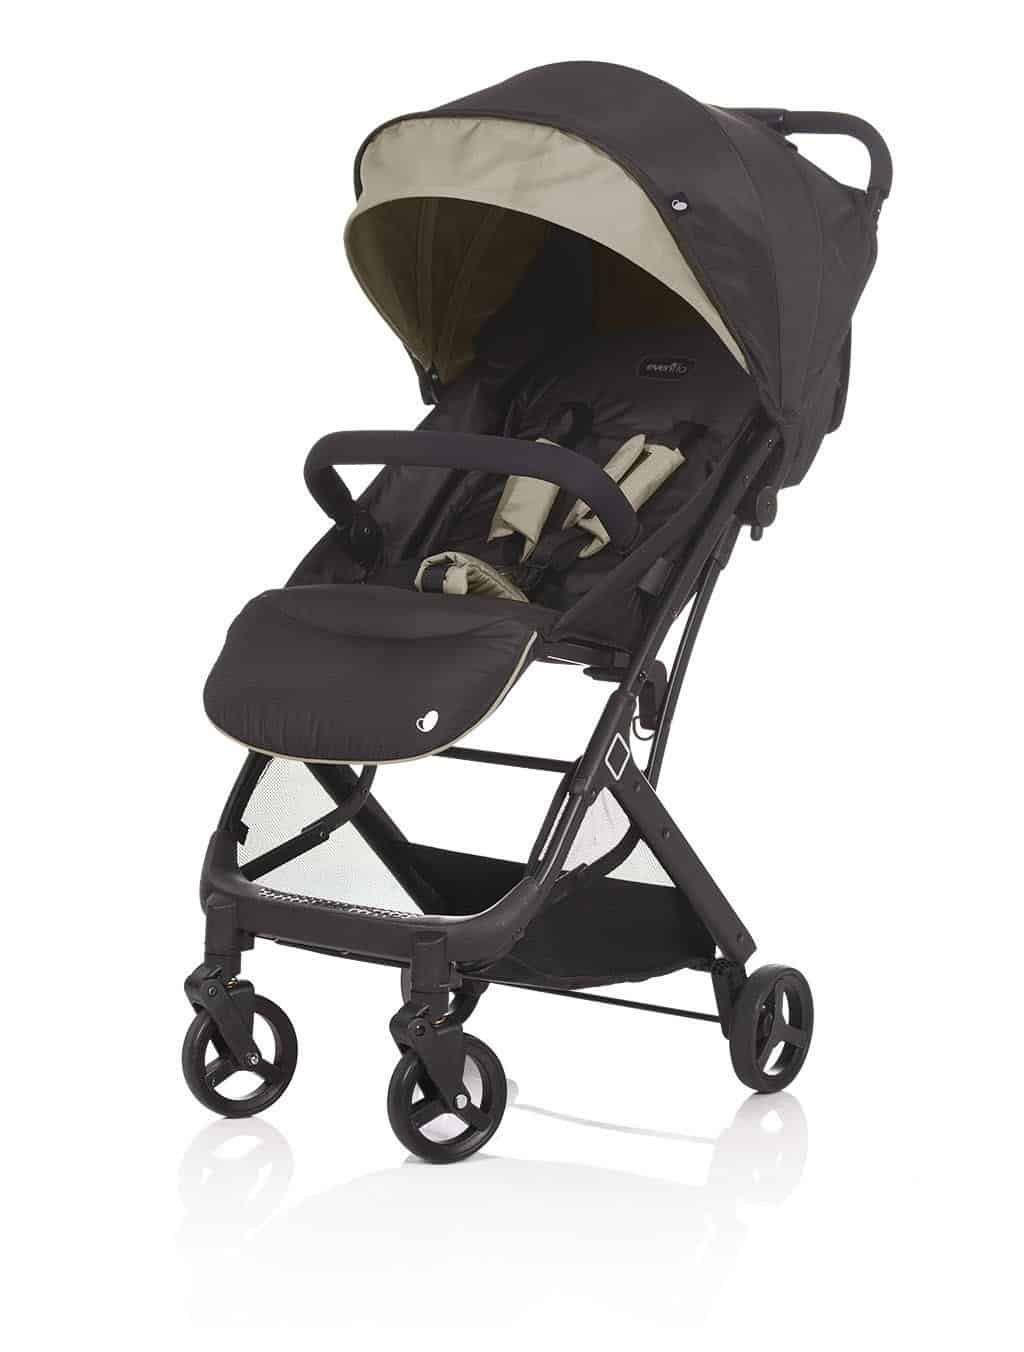 Best Selling Baby Strollers in India (October 2020)